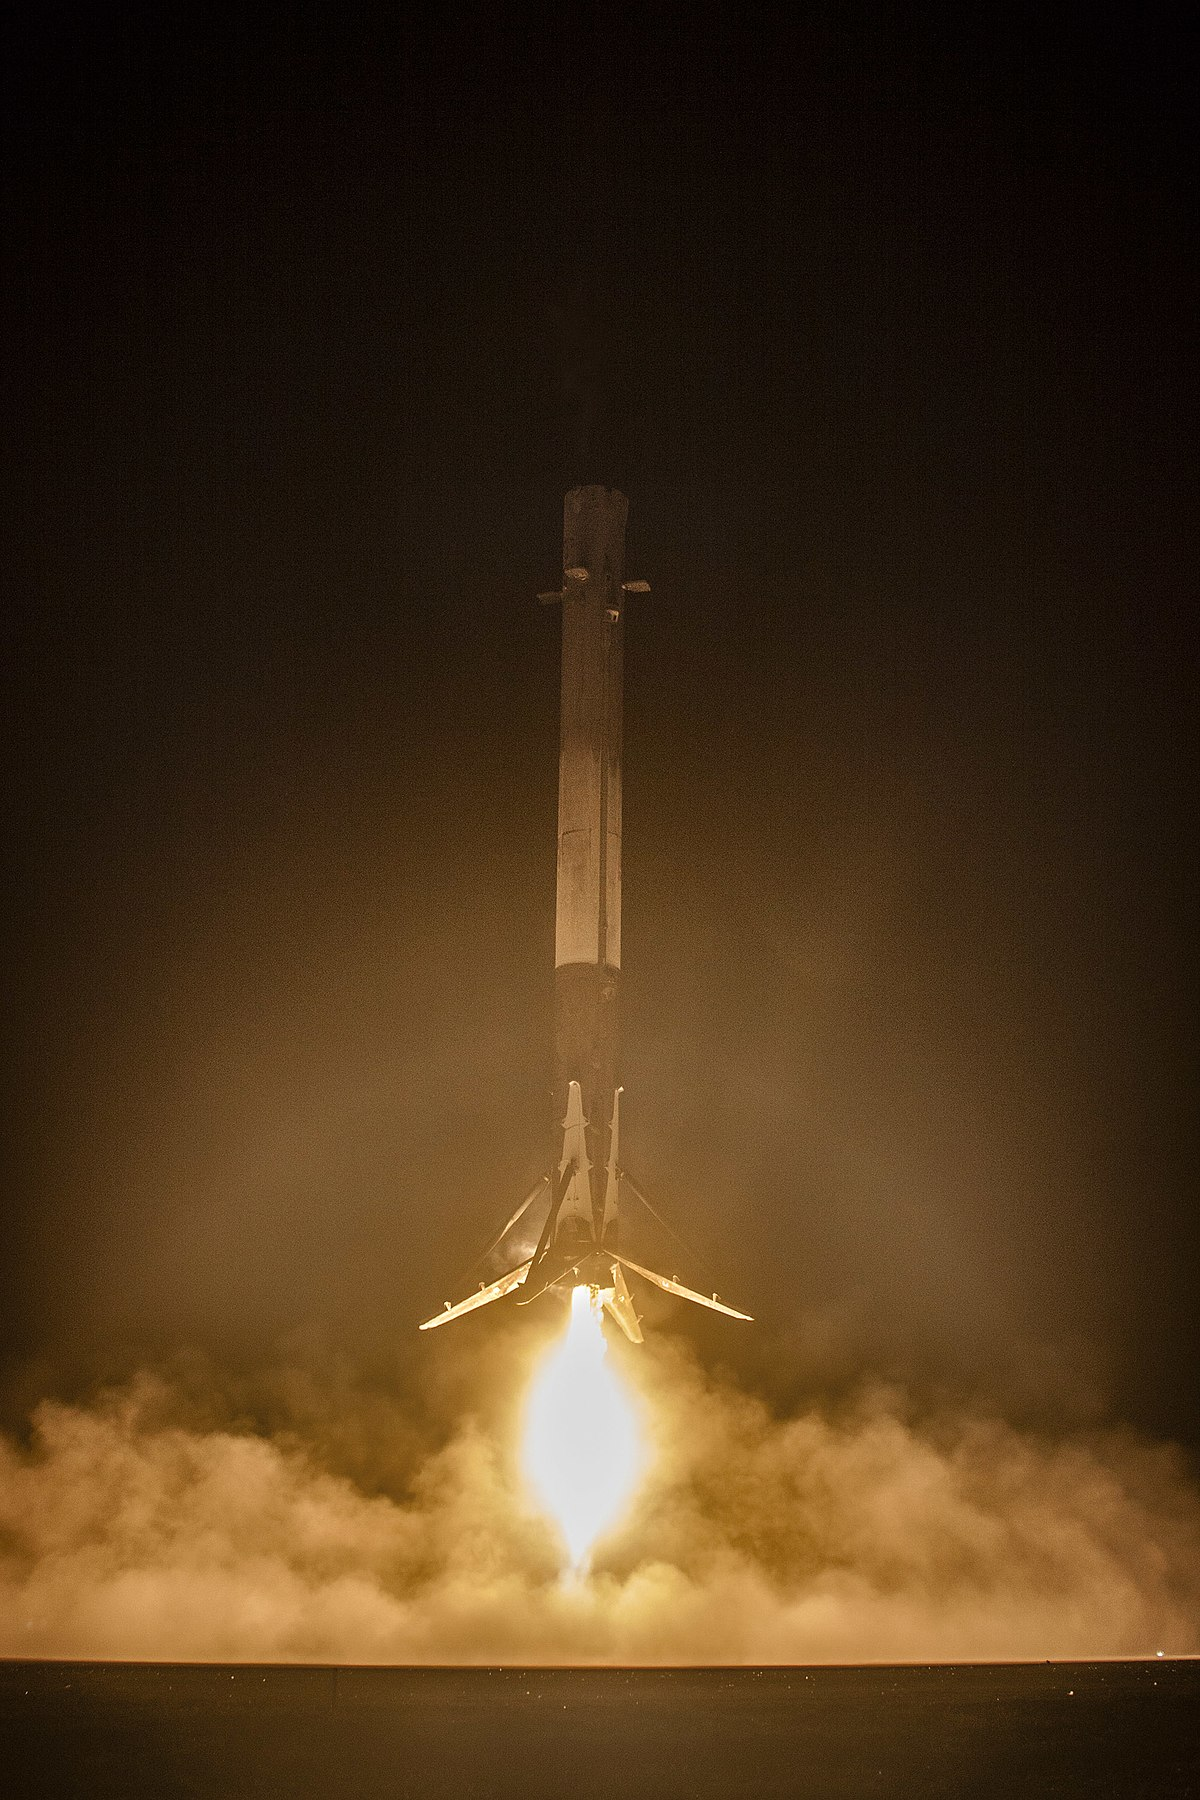 SpaceX reusable launch system development program - Wikipedia